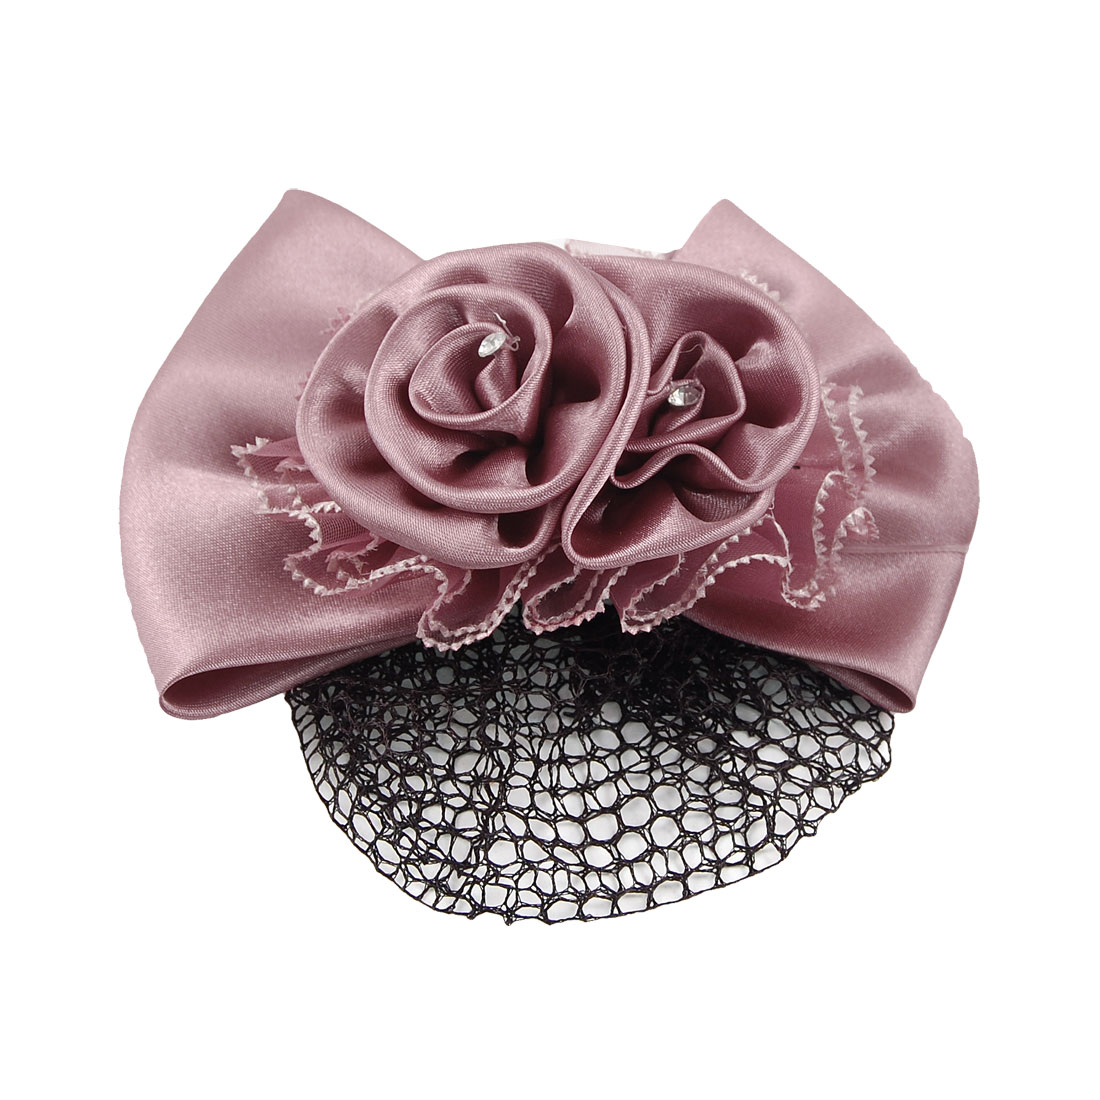 Mauve Bow Bowknot Snood Net Barrette Hair Clip Bun Cover for Woman